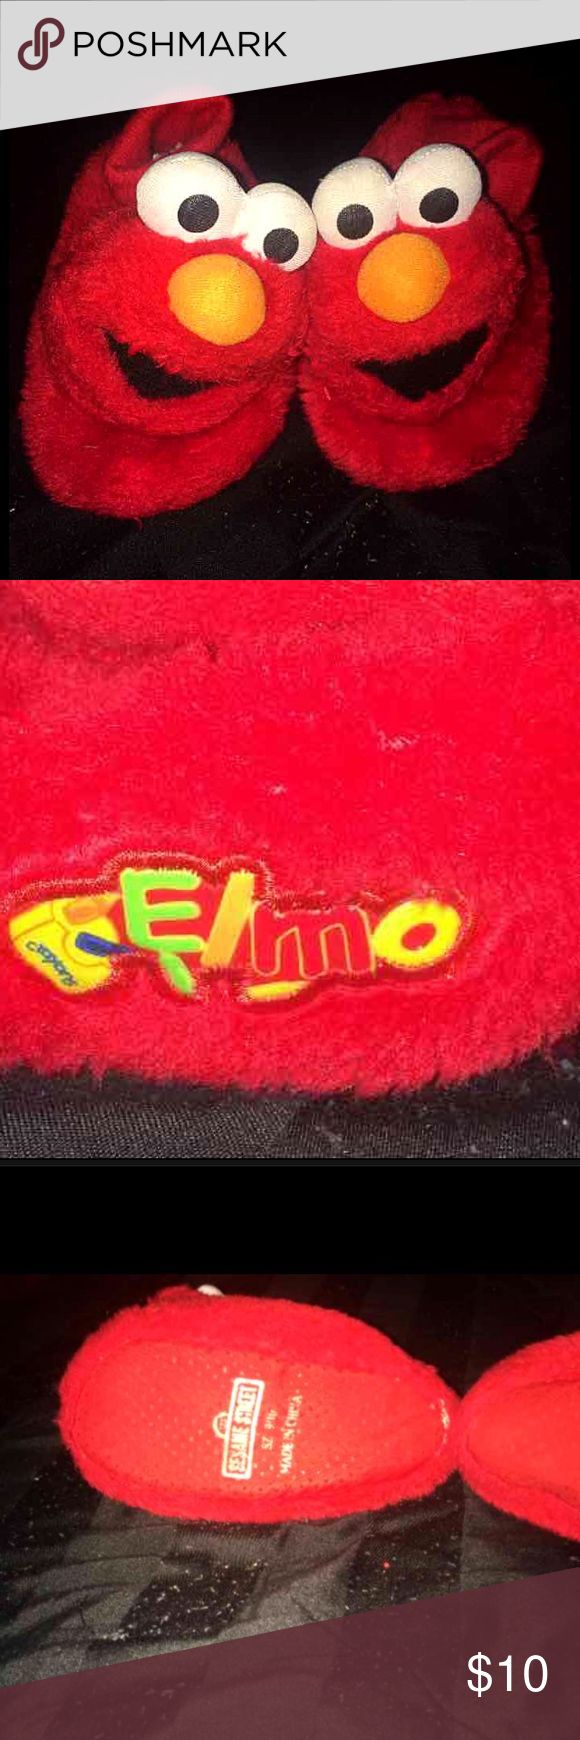 ELMO Slipper ❤️ Adorable Elmo.  Slippers.   Pics show all detail good condition ready for. A new. Home  On bottom of one slipper only see ware  .  Size 9/10  is actual size marked on slipper  Size 9 Size10 Will ship in Polly bag to keep cost down   Tags; Sesame Street  Elmo  Big bird  Abby cadabby  Cookie Monster    Bundle for best possible deals  ✨ Sesame Street Shoes Slippers